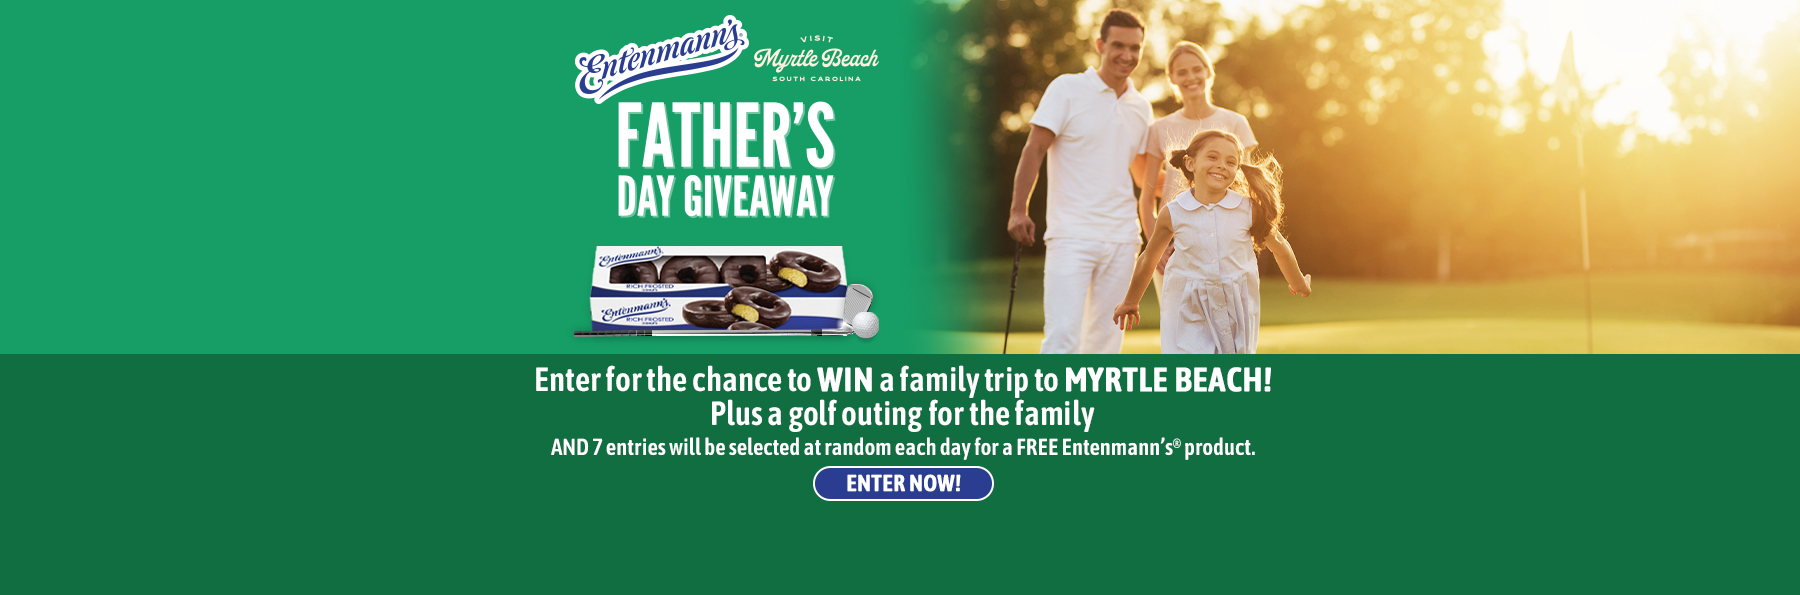 Father's Day Giveaway with Entenmann's® & Visit Myrtle Beach